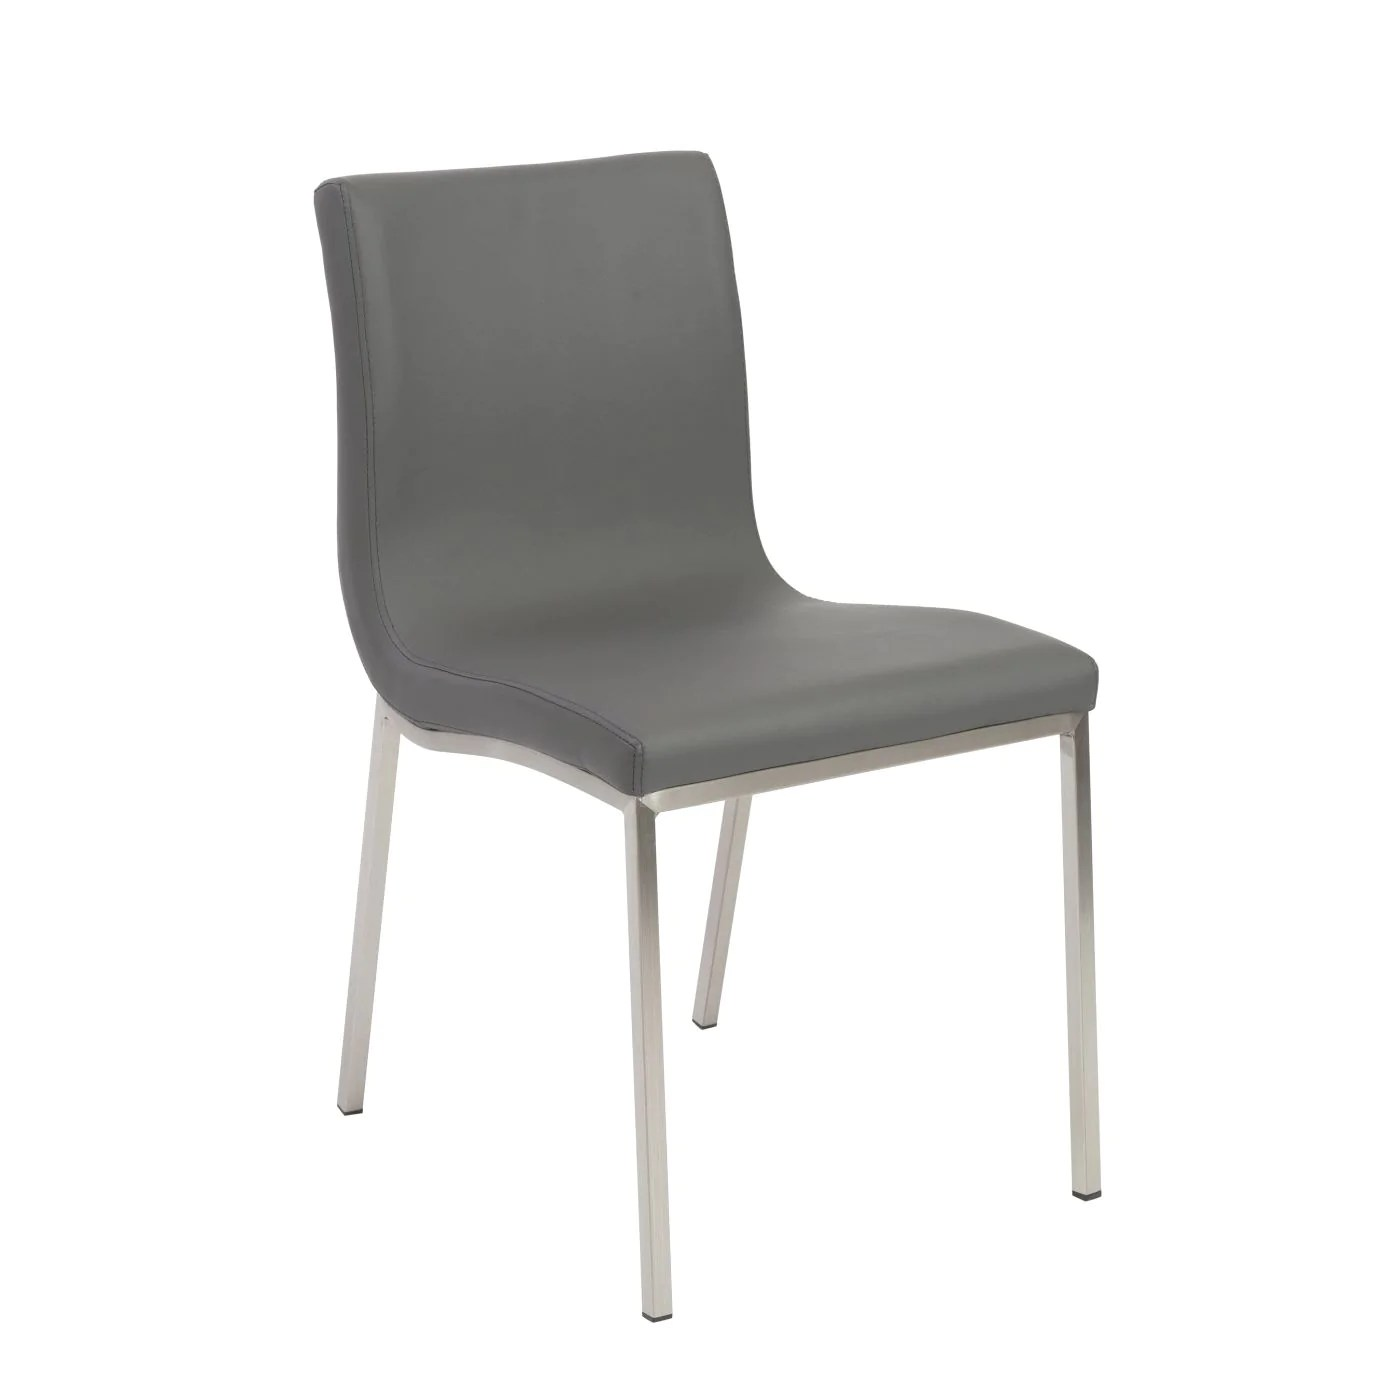 dining chairs with stainless steel legs where to buy chair cane euro style scott in gray brushed